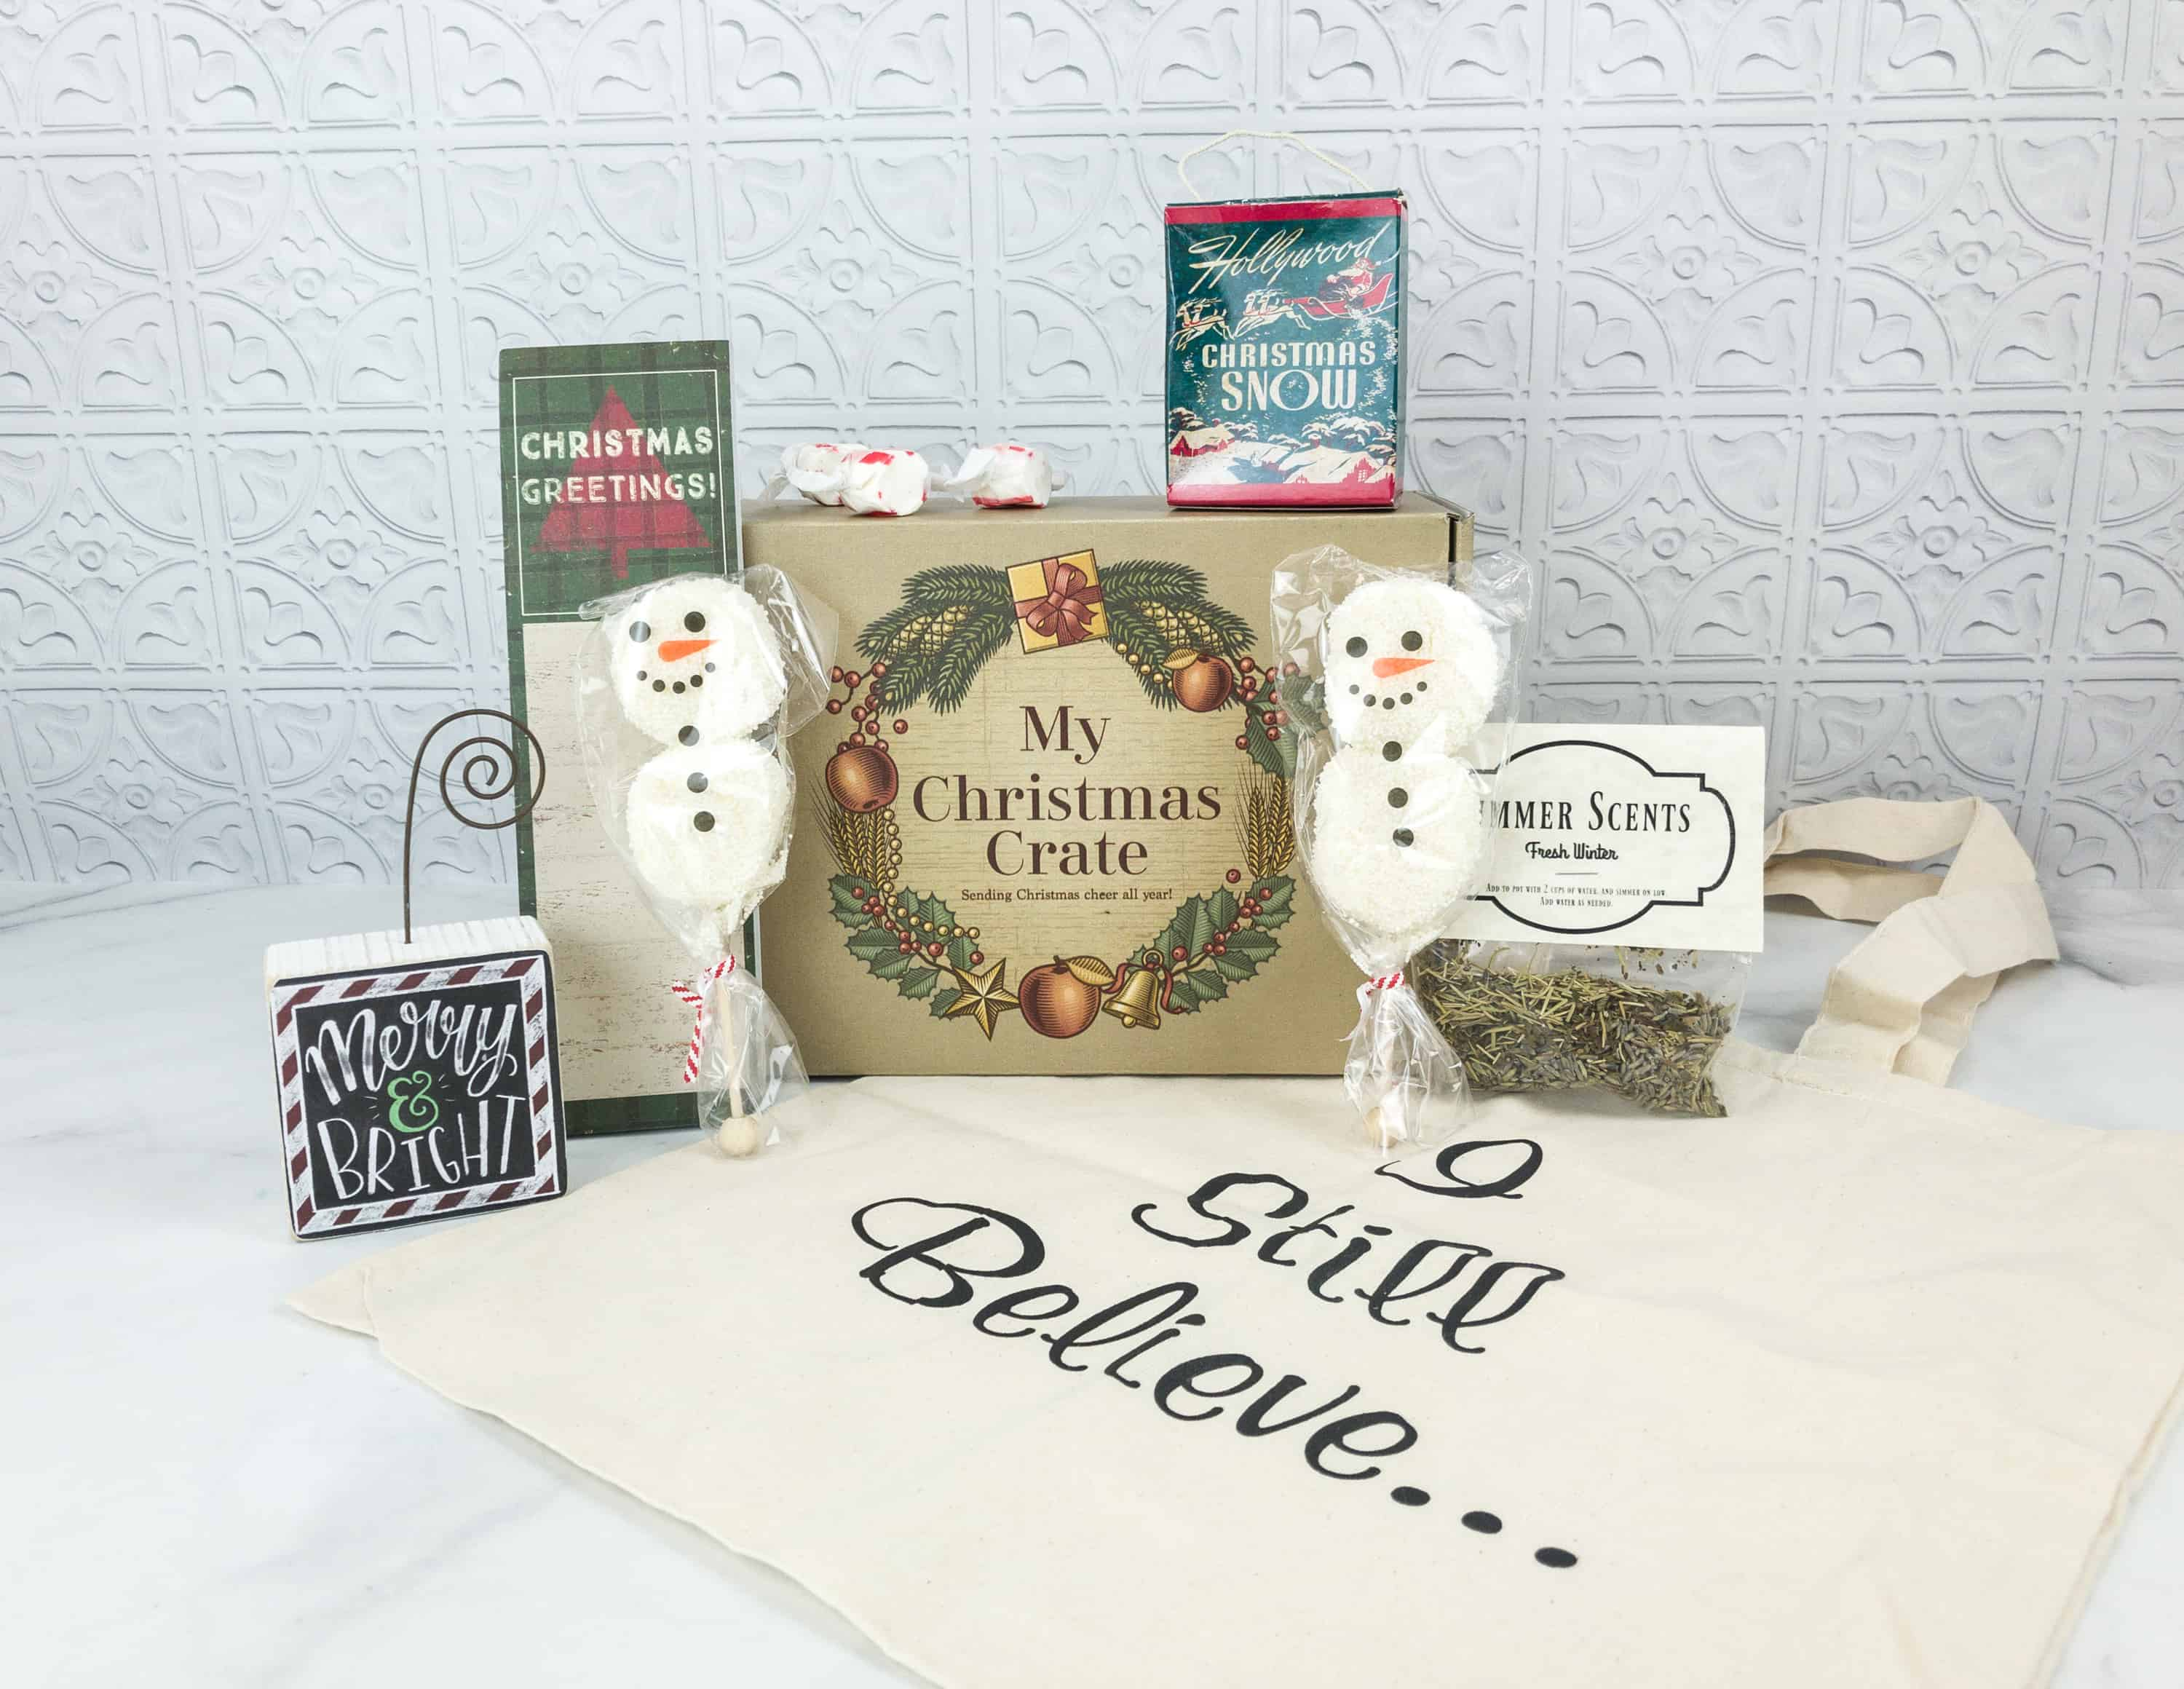 Christmas Crate Box.My Christmas Crate June 2018 Subscription Box Review